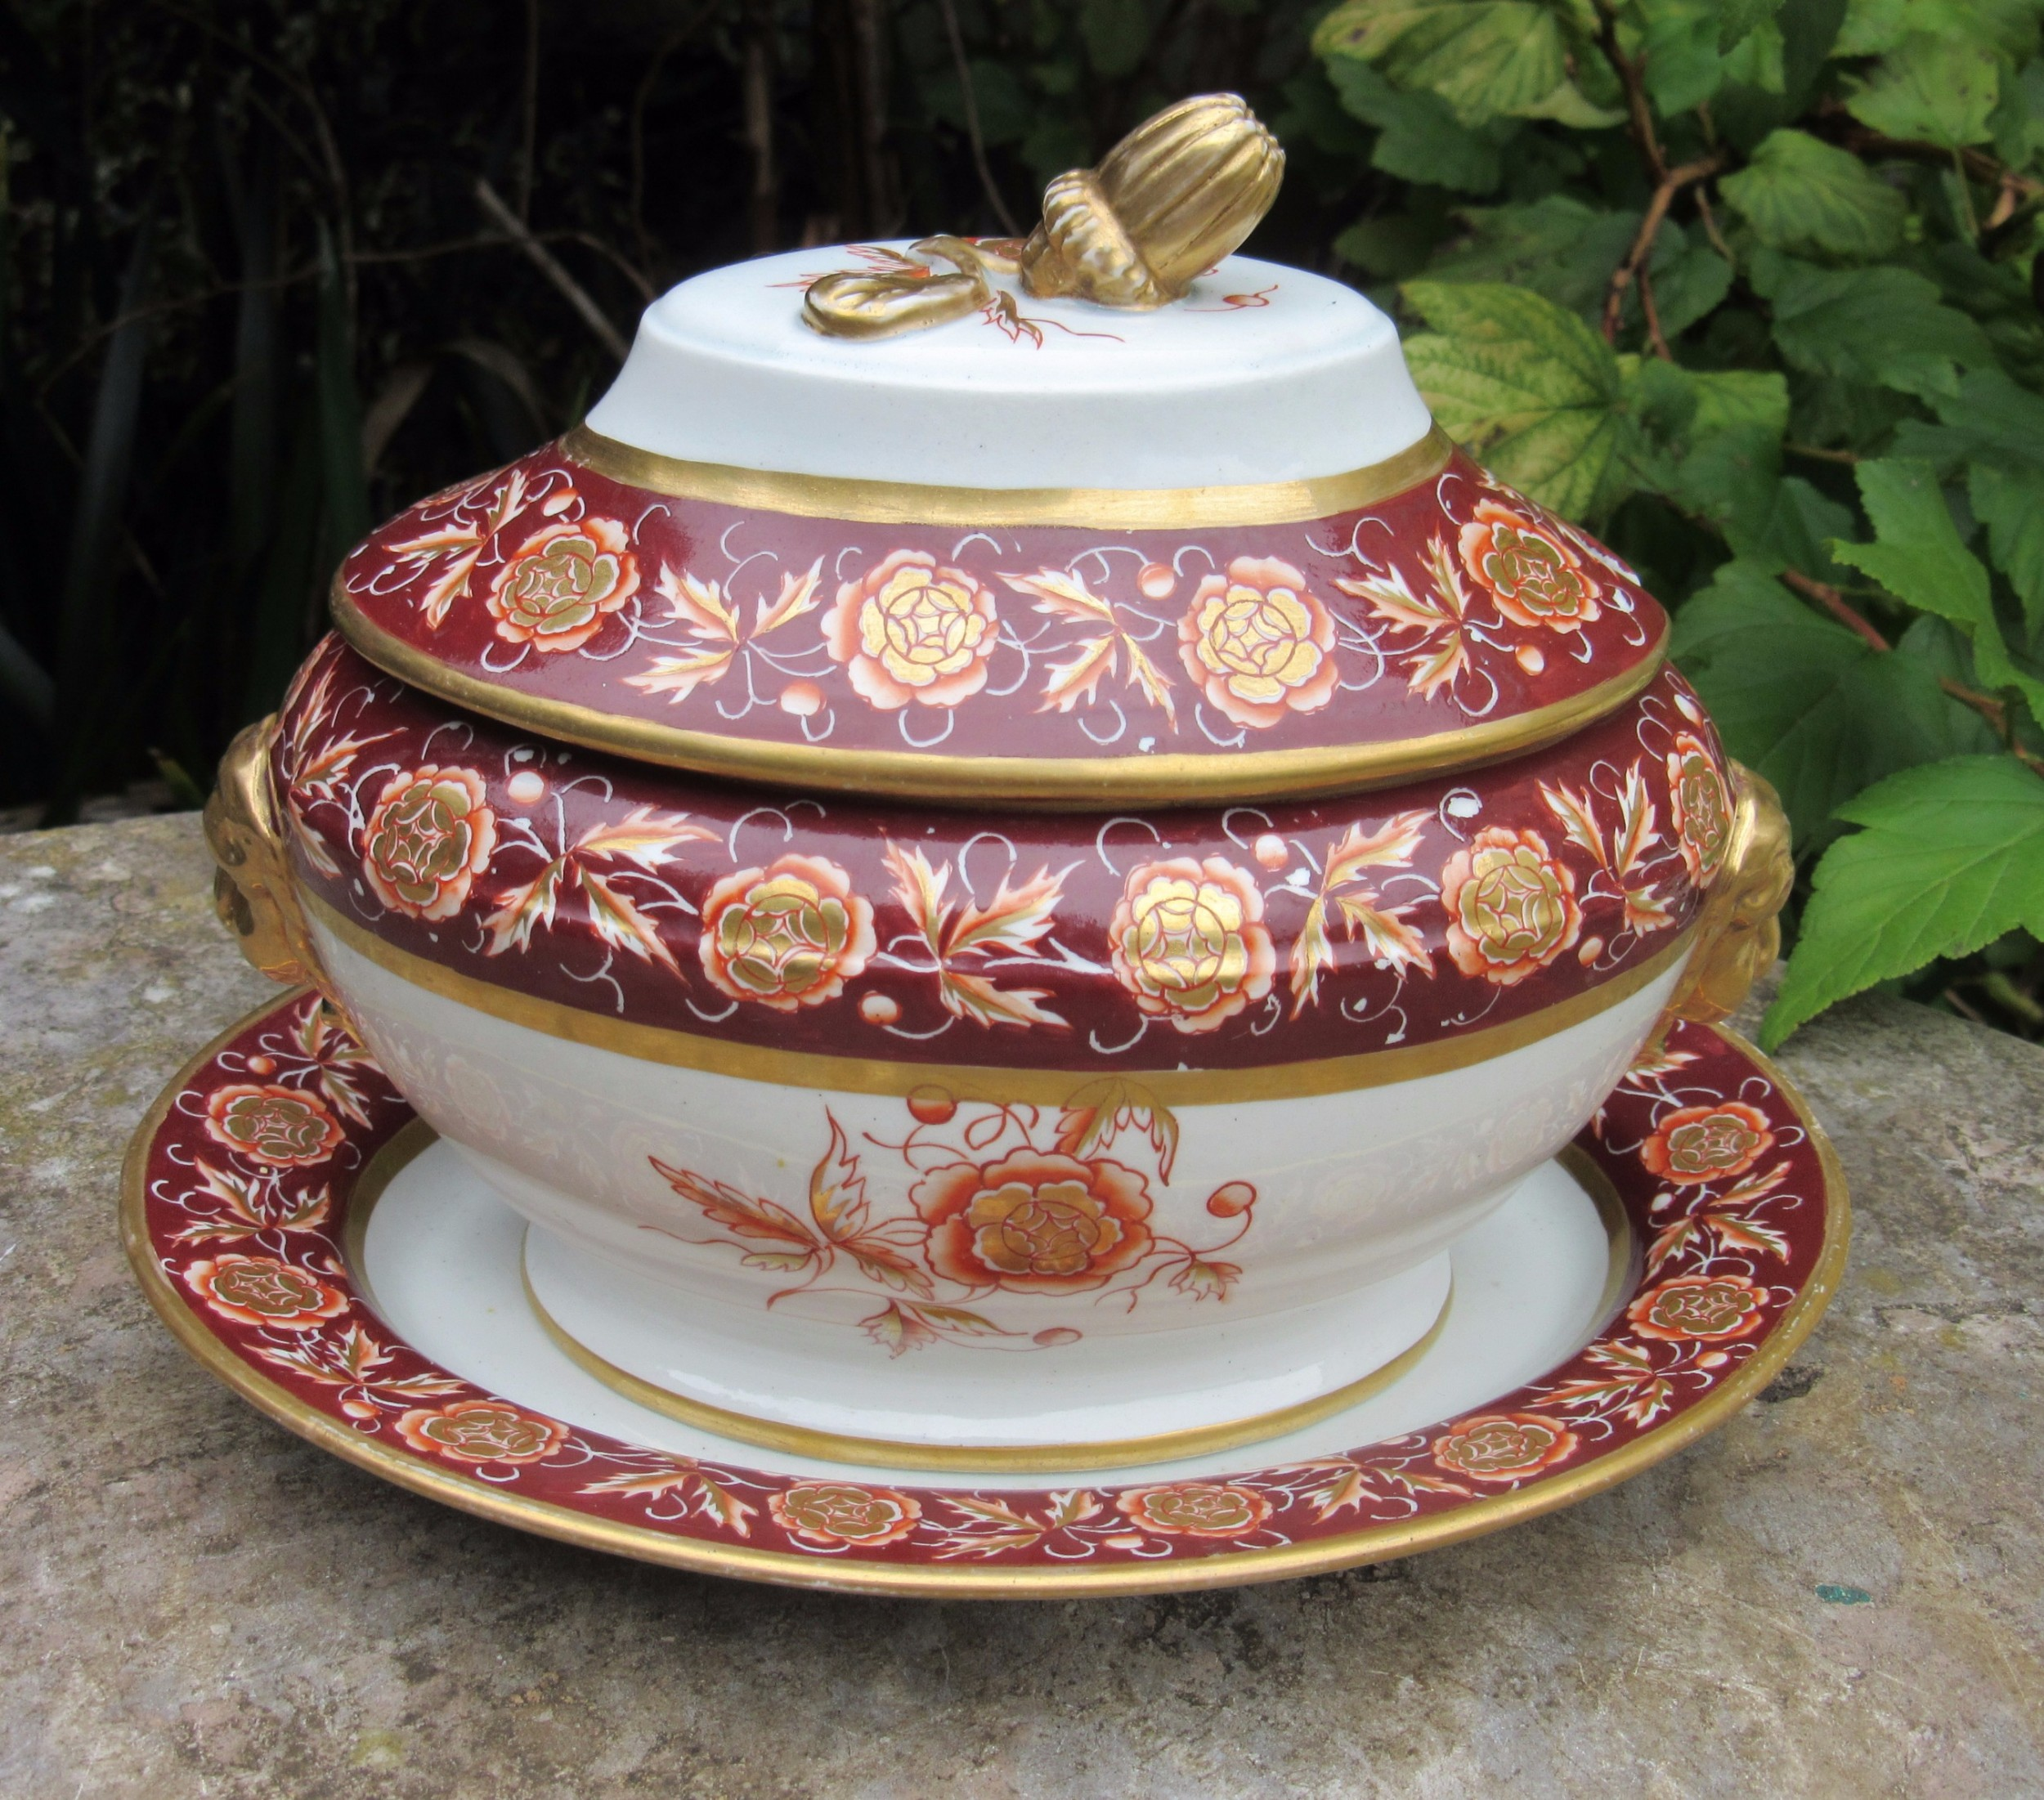 mason's patent ironstone china sauce tureen